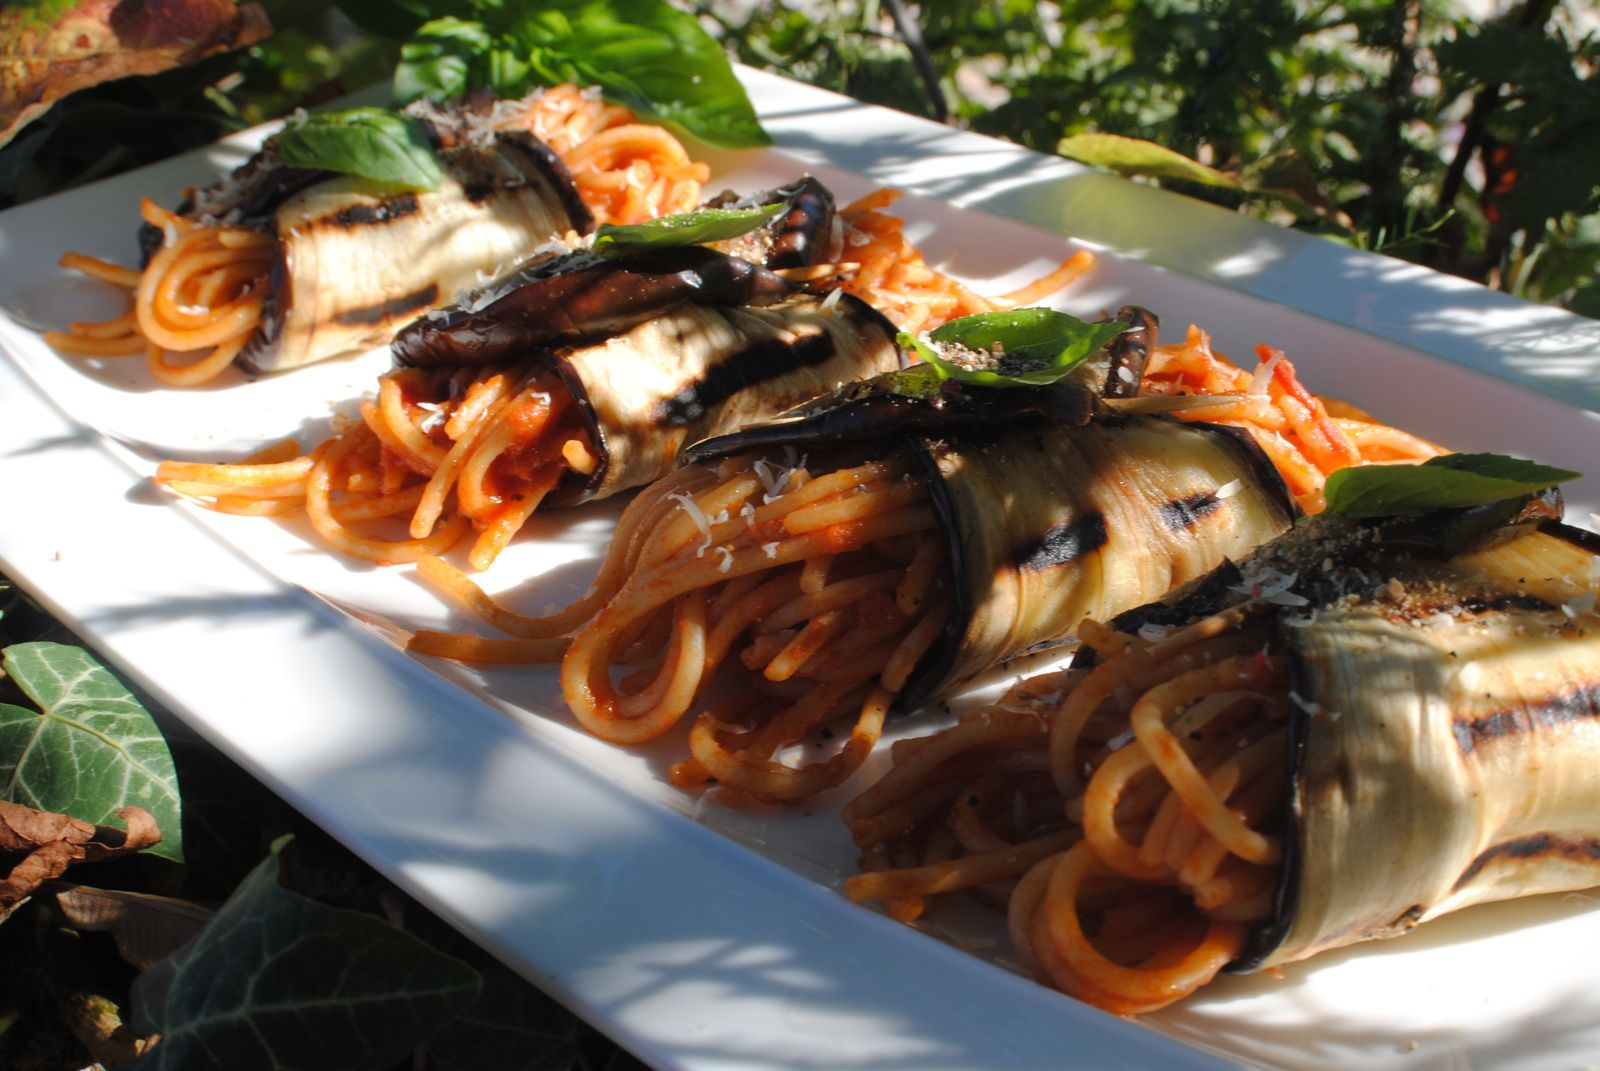 Cannoli d'aubergines aux spaghettis complet  :